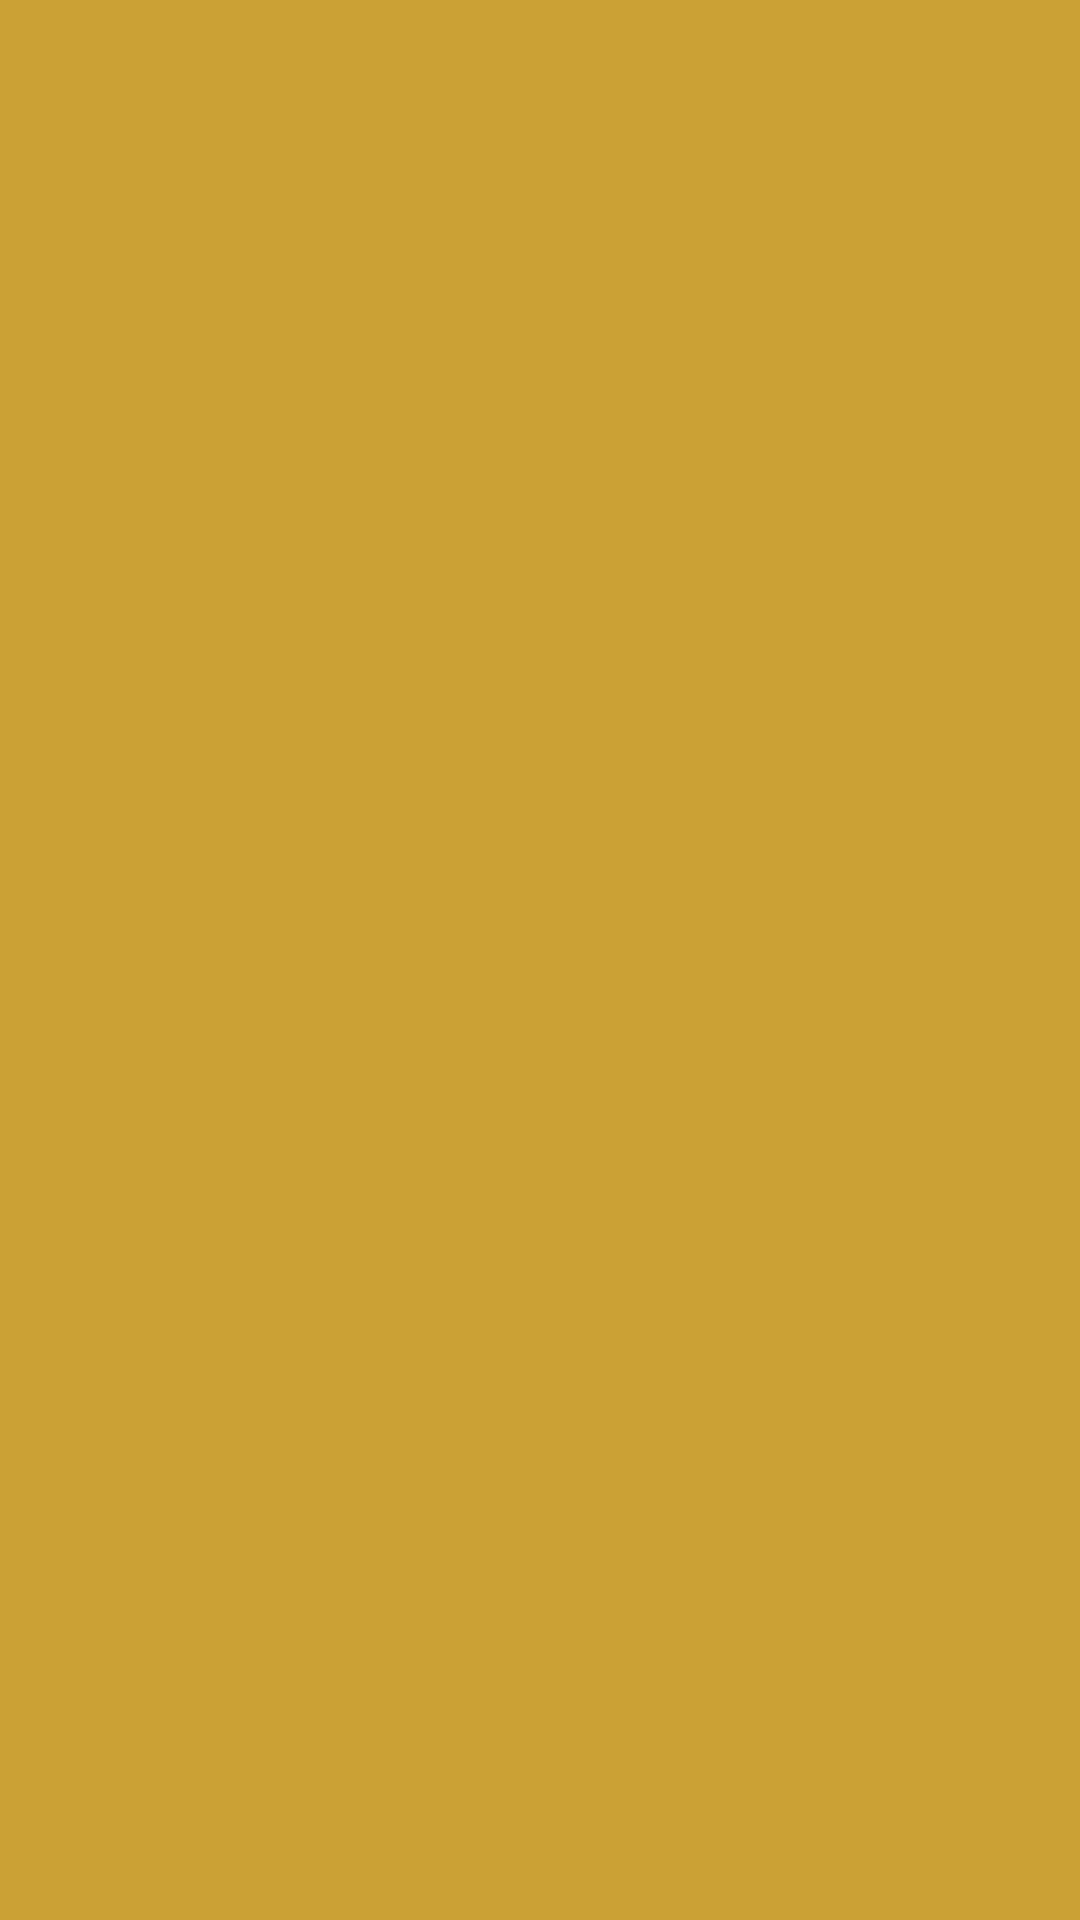 1080x1920 Satin Sheen Gold Solid Color Background